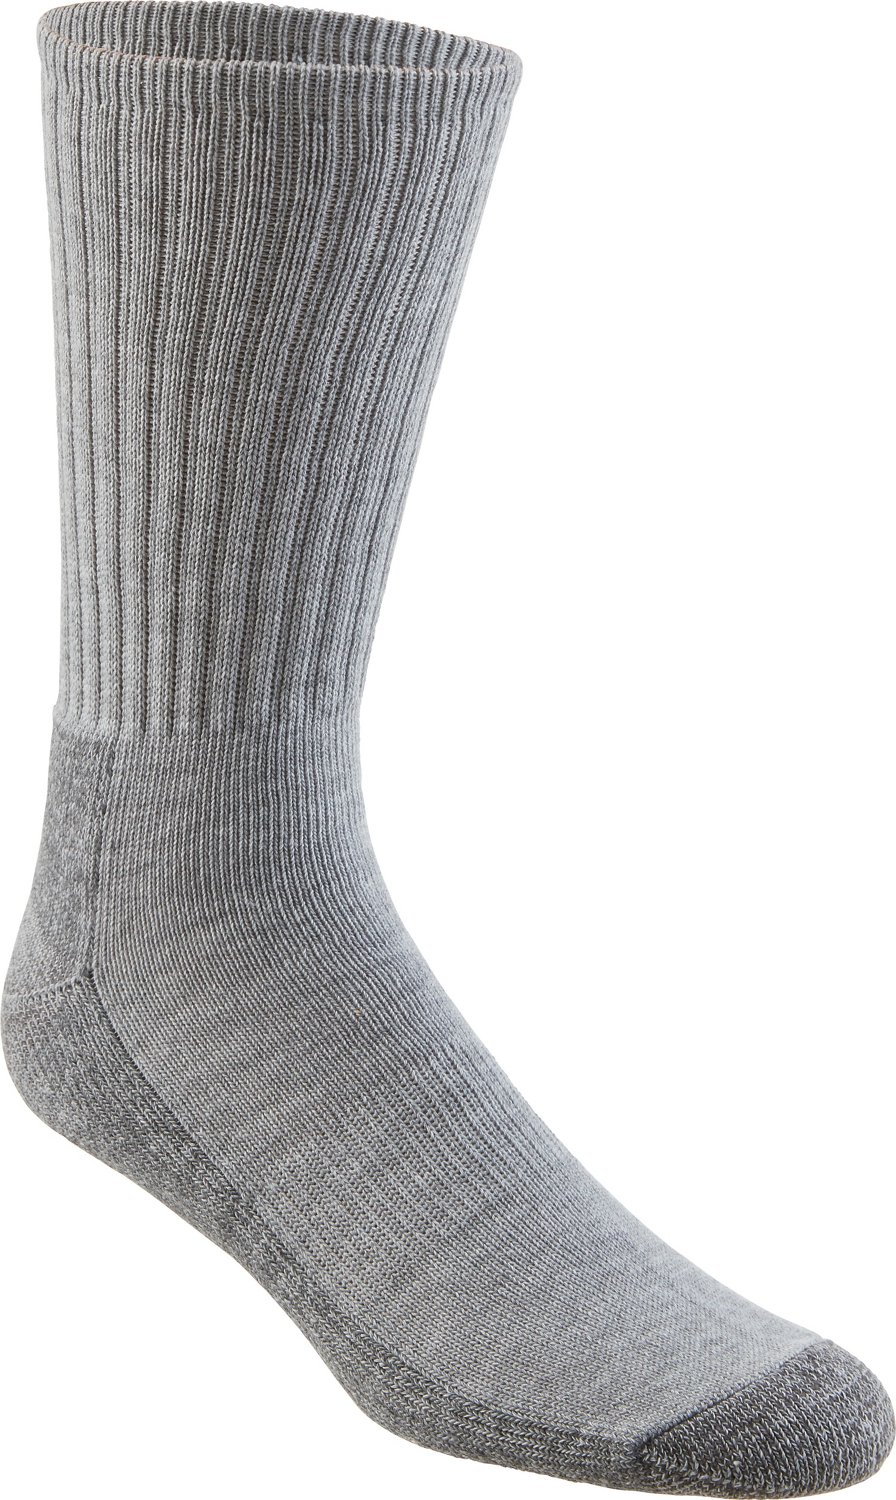 44b2a3853 Display product reviews for Brazos Men s Work Crew Socks 6 Pack